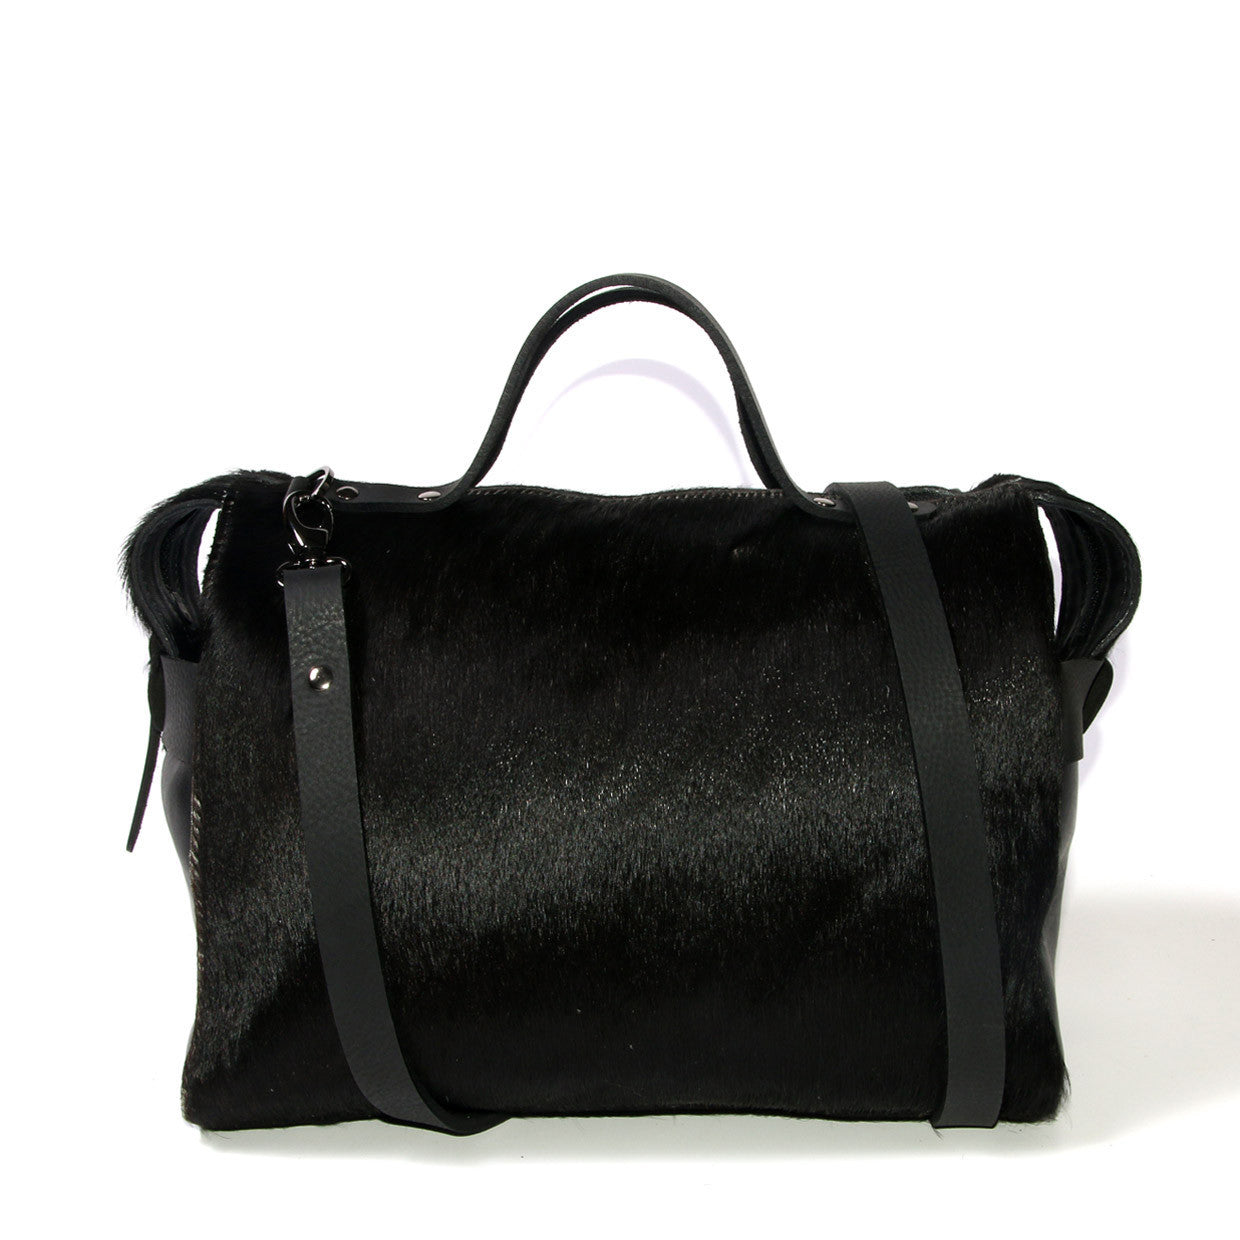 Bridget Bowler - Black cowhide - Shoulder strap wrapped